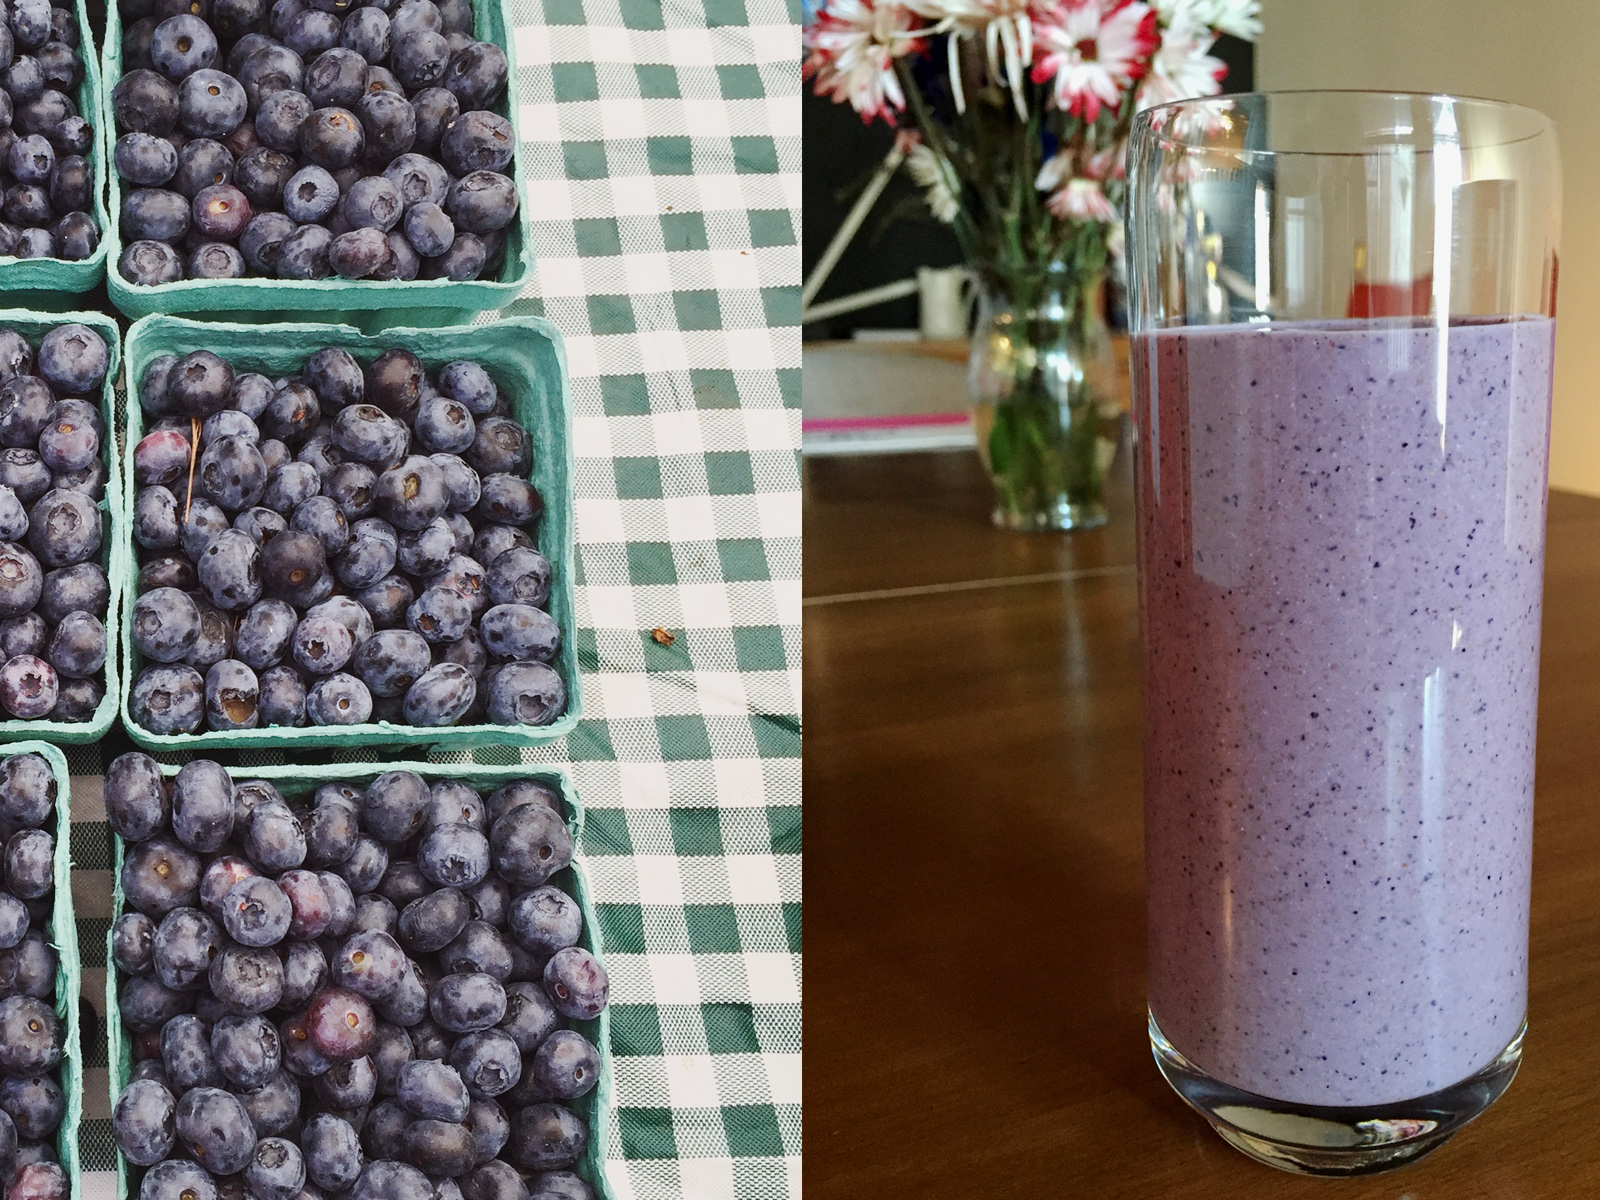 farmer's market blueberries and smoothie